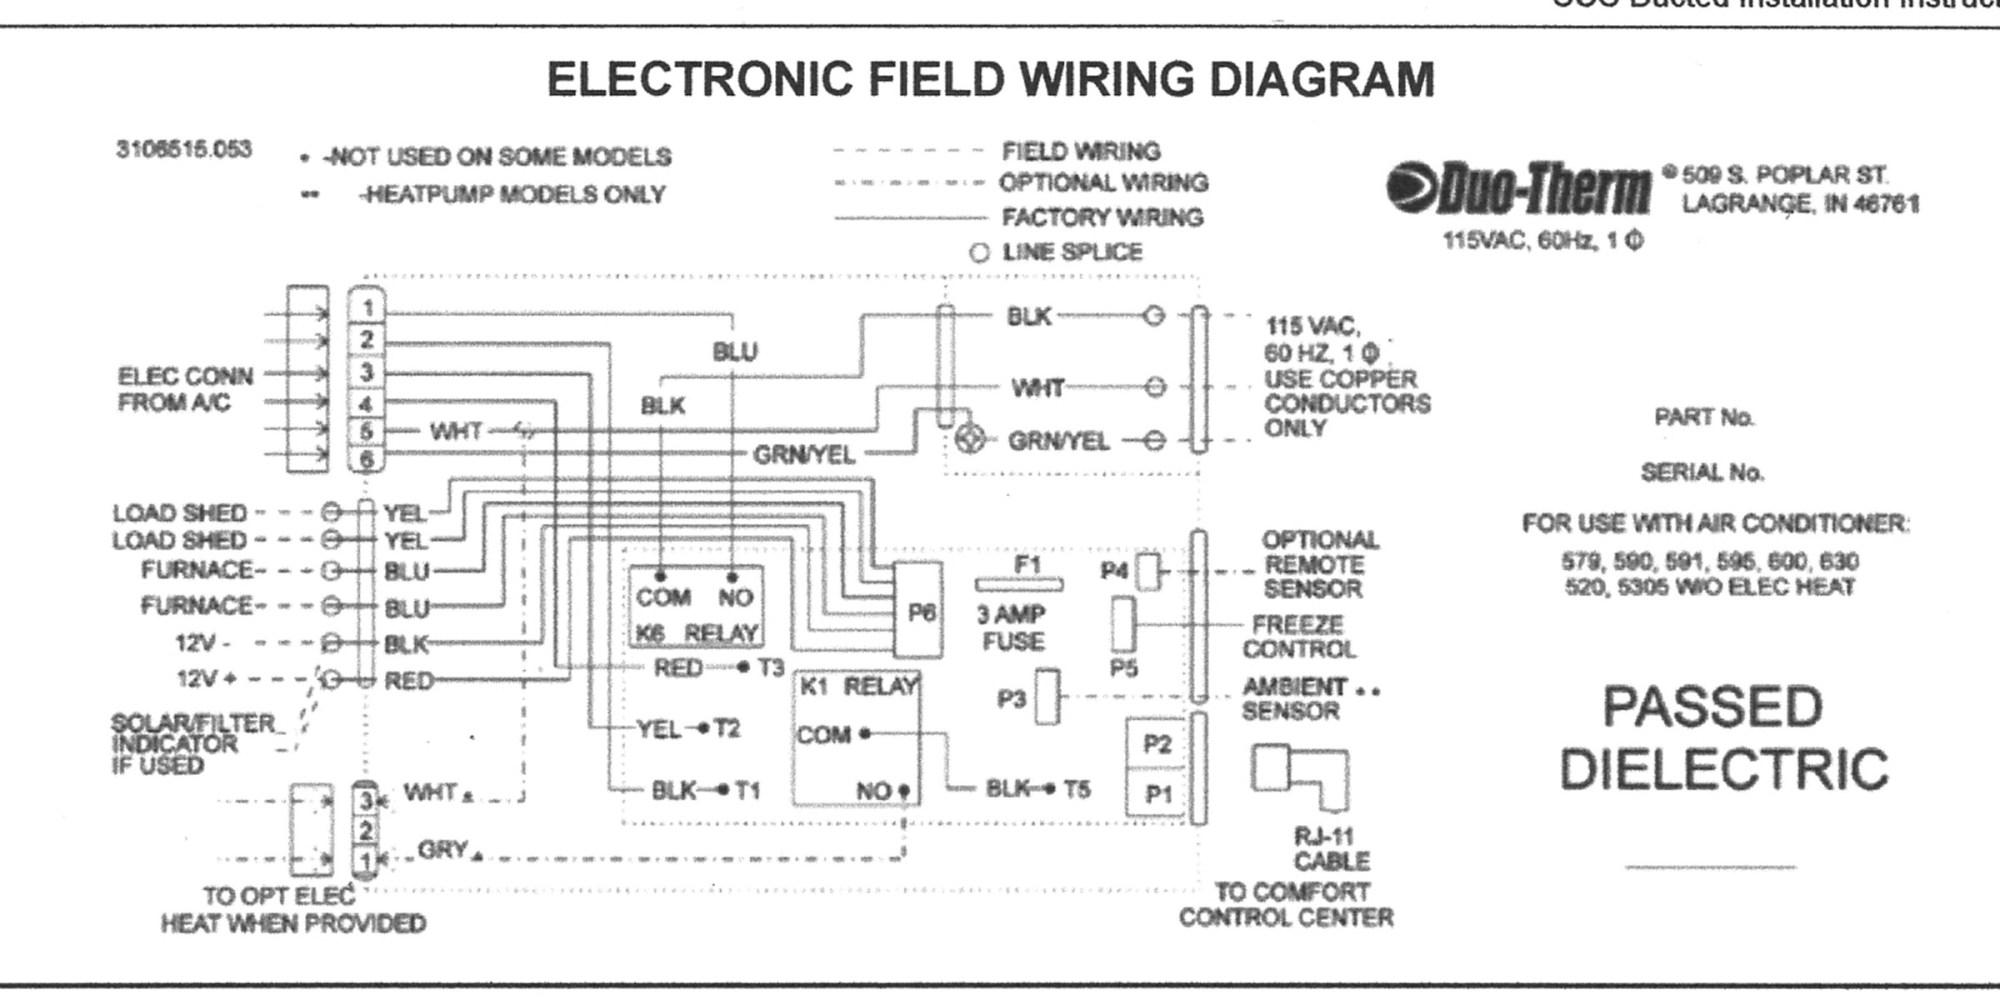 hight resolution of duo therm thermostat wiring diagram wiring a ac thermostat diagram new duo therm thermostat wiring